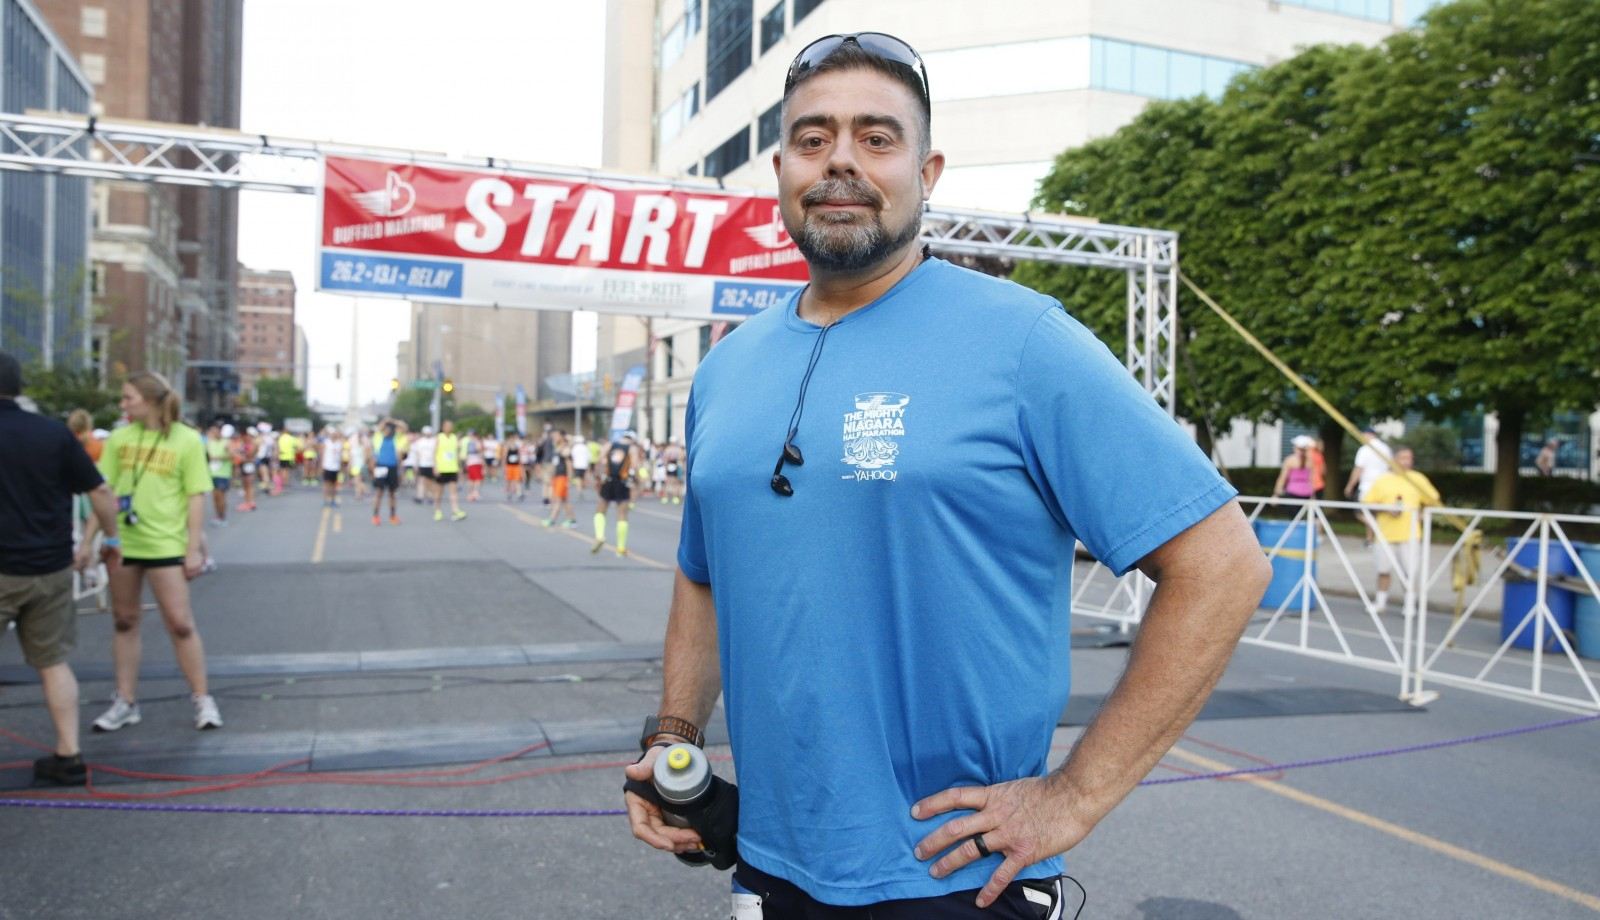 Tim Kaufman, who weighed 400 pounds four years ago and was addicted to painkillers, completed his first Buffalo Marathon on Sunday.